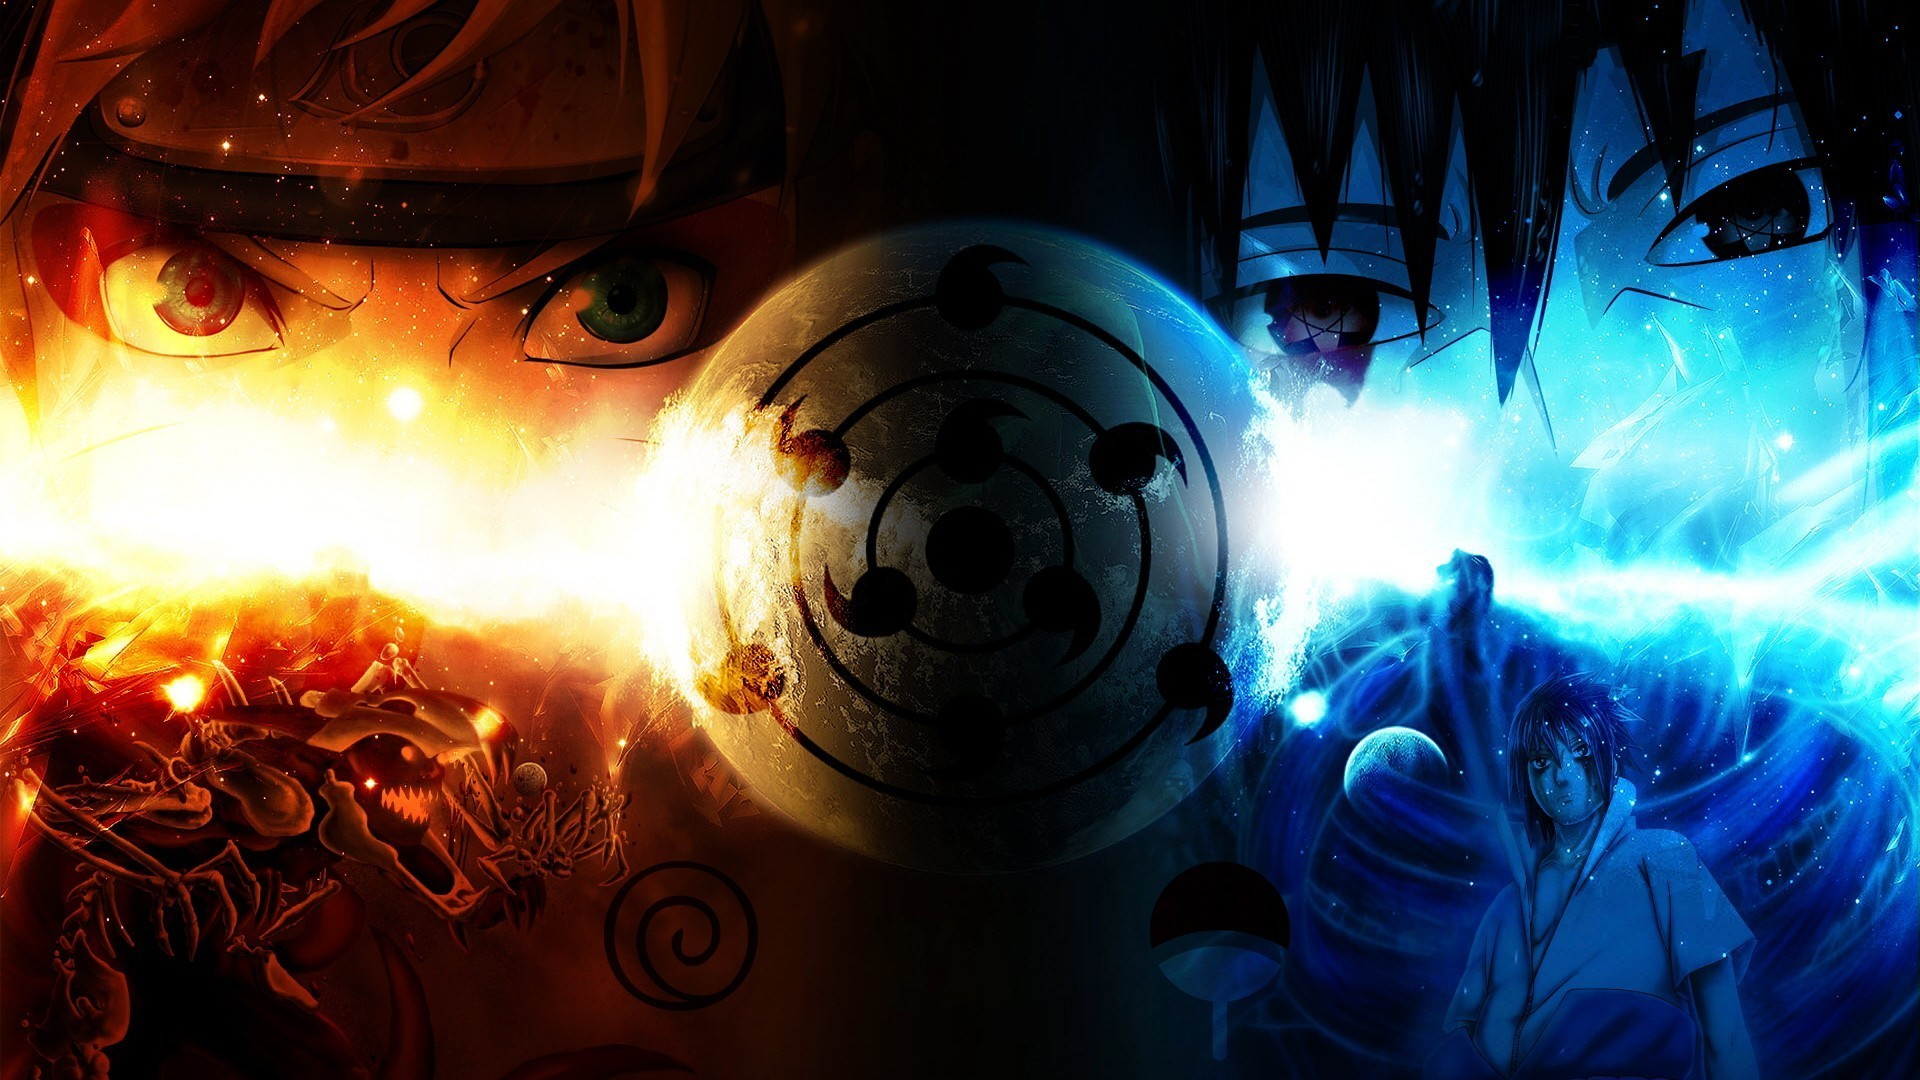 Hd Naruto Wallpapers 72 Images HD Wallpapers Download Free Images Wallpaper [1000image.com]